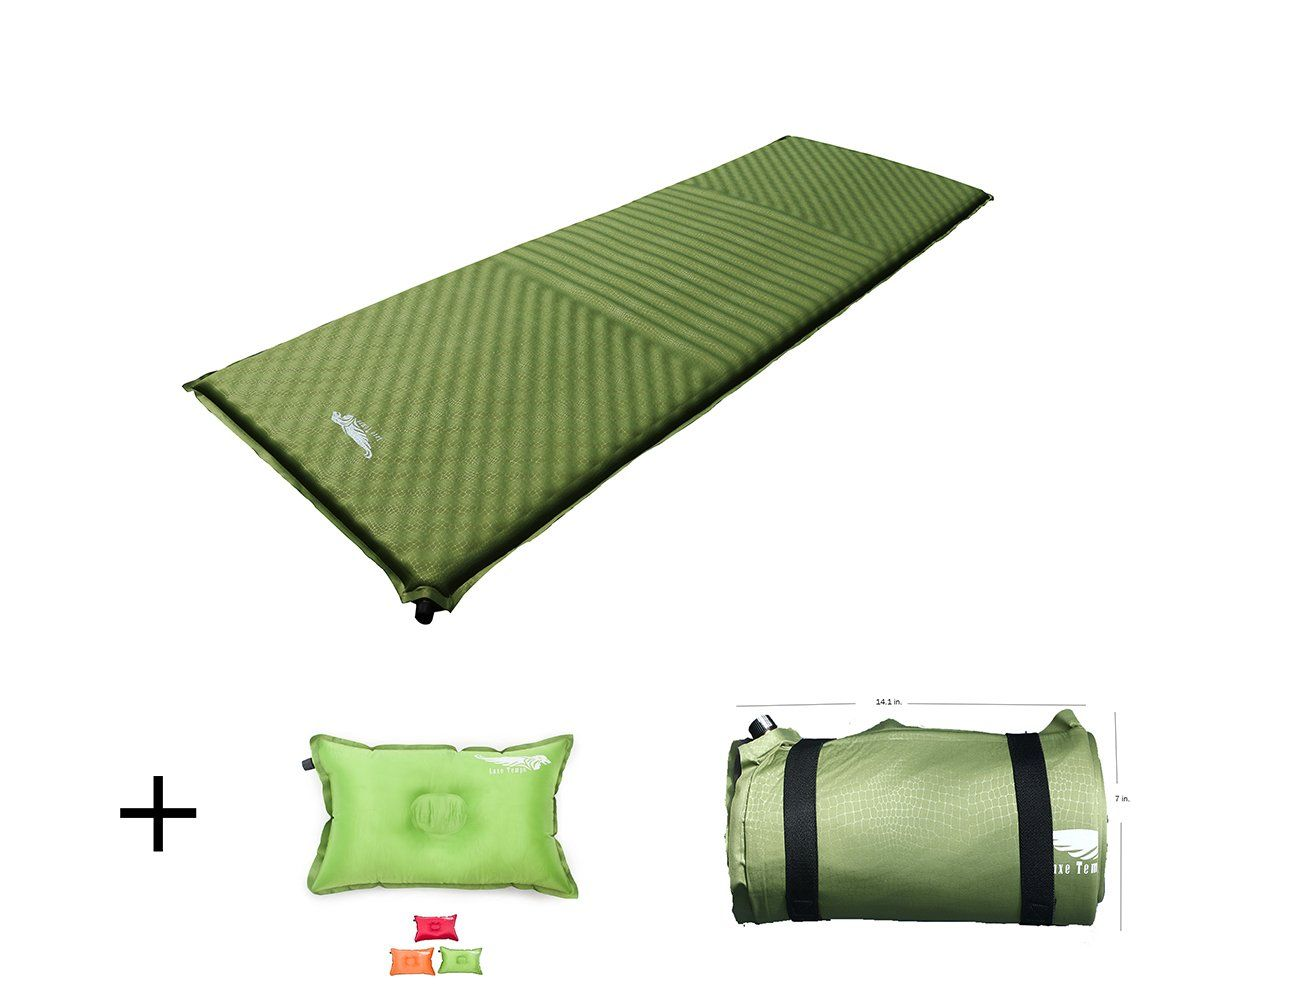 luxe tempo luxury self infalting sleeping pad 3 6lb with free pillow